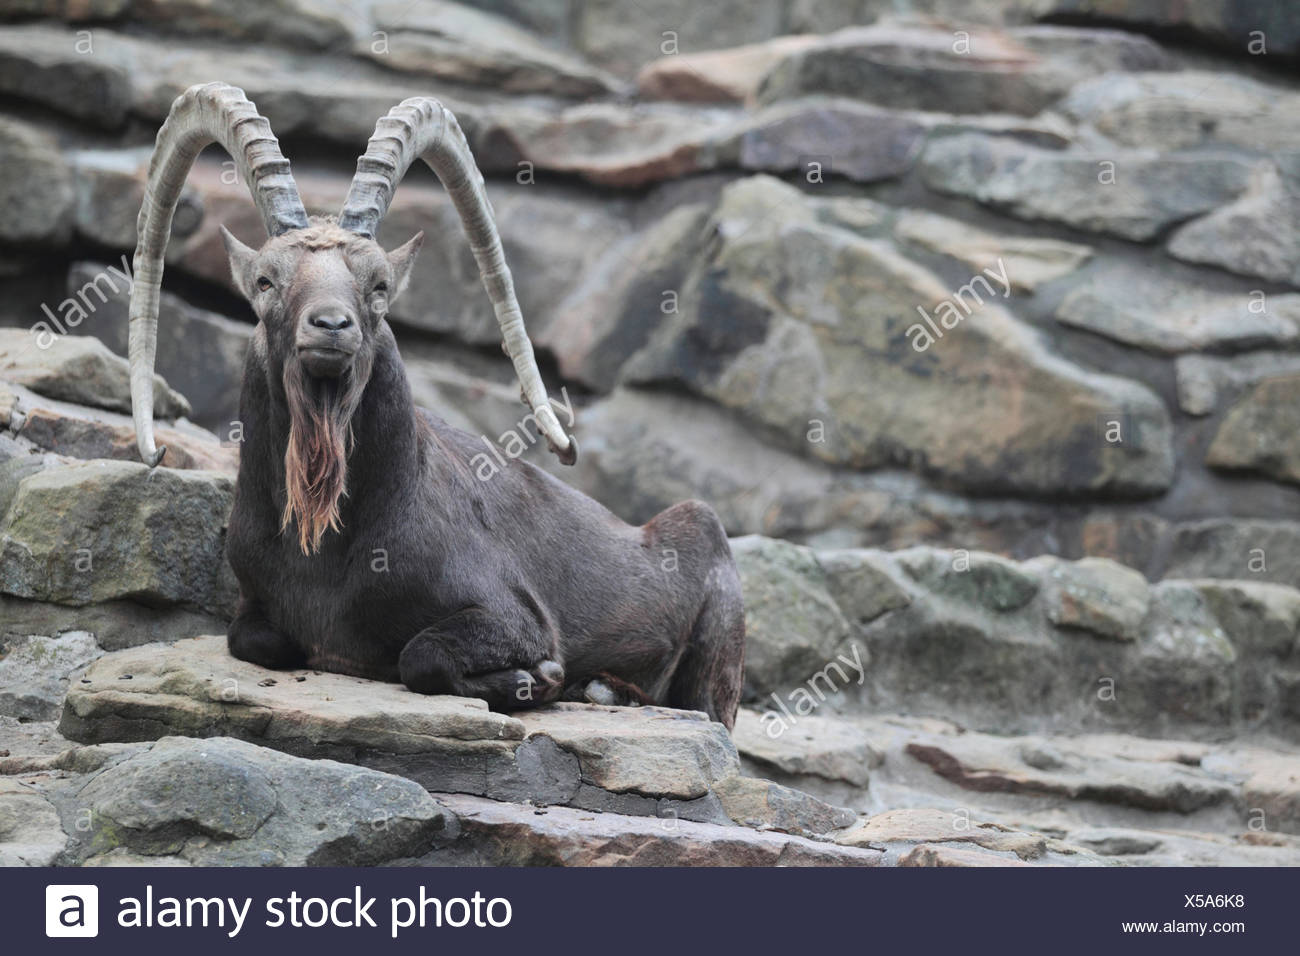 Portrait of a Siberian ibex, Capra sibirica, a species of ibex that lives in central Asia. It has traditionally been treated as a subspecies of the Alpine ibex, and whether it is specifically distinct from other ibex is still not entirely clear. - Stock Image